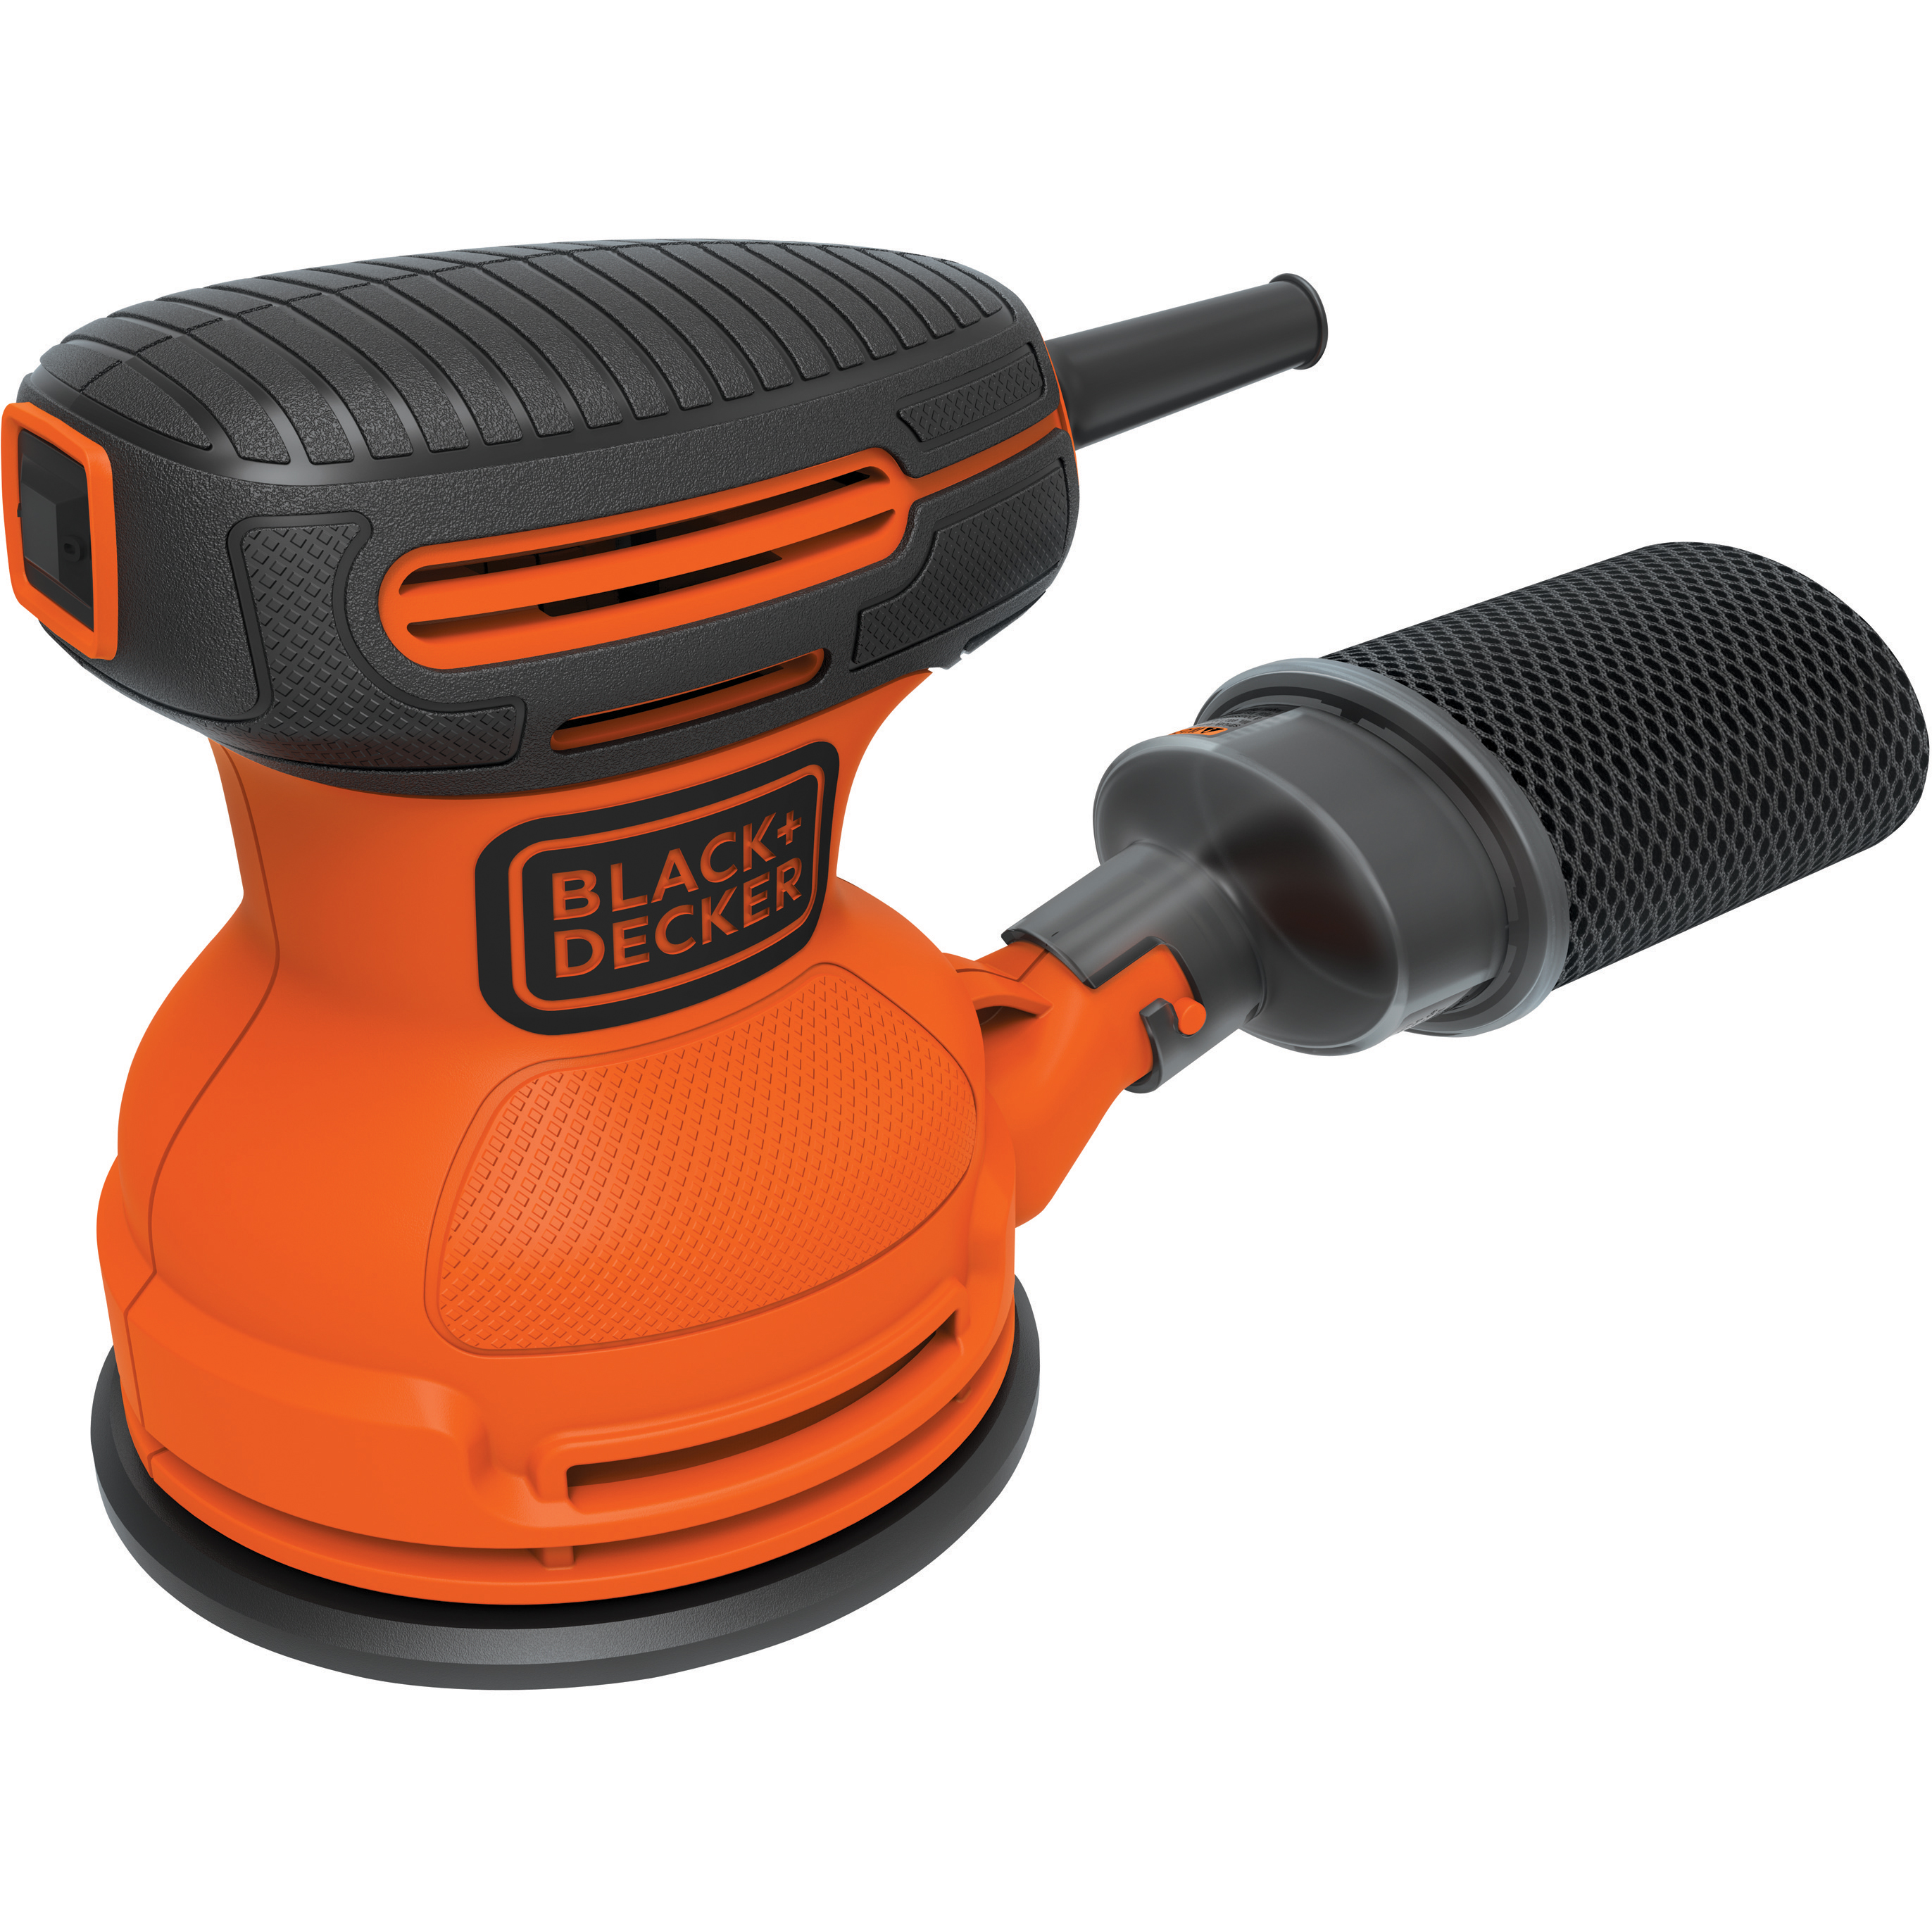 Black & Decker BDERO100VA Random Orbit Sander with Bonus Sandpaper by Stanley Black & Decker